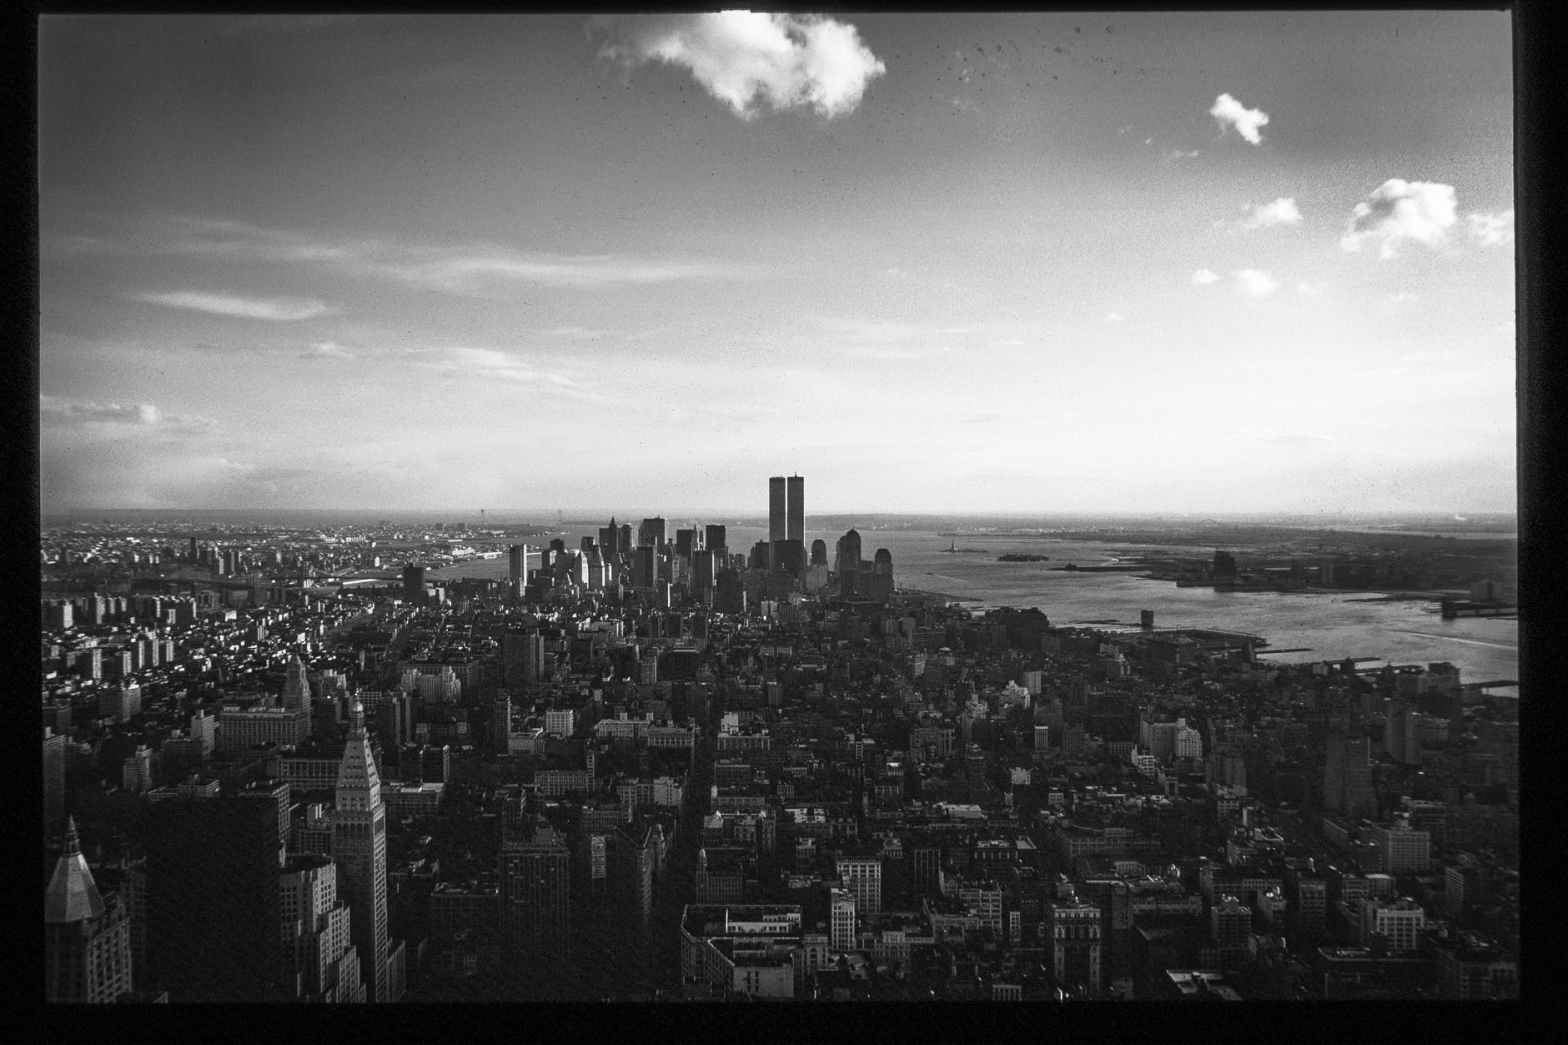 monochrome photo of city during daytime